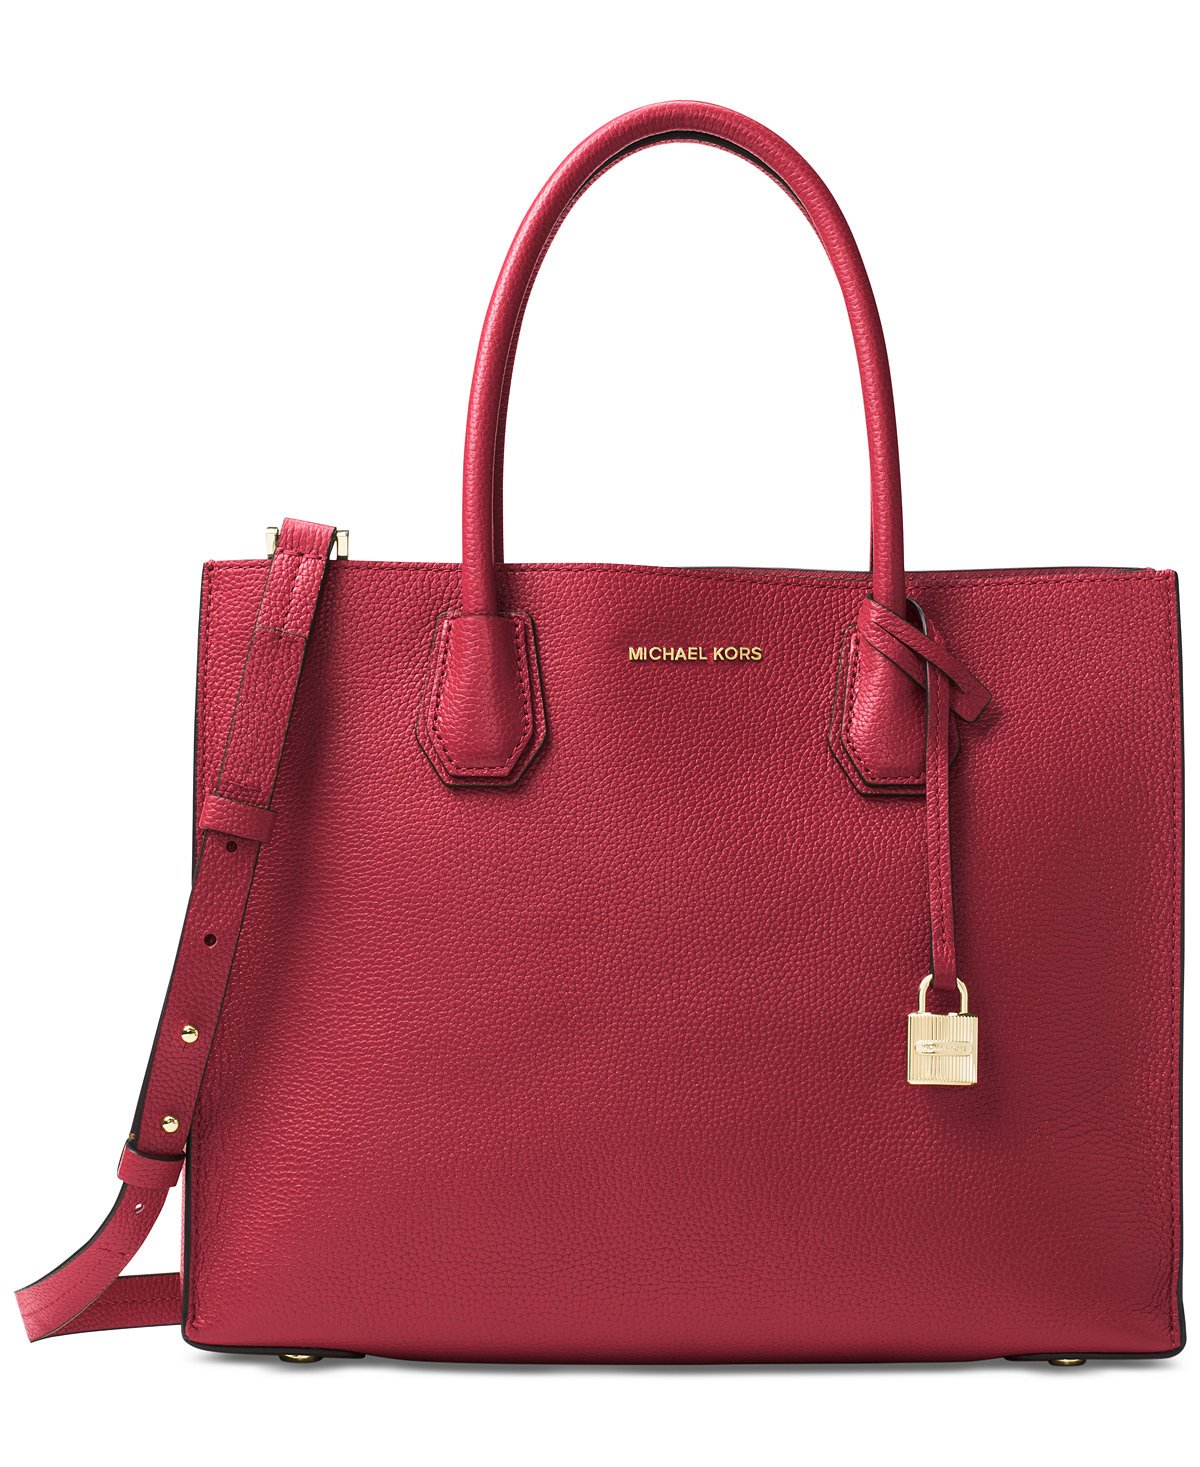 Michael Kors Mercer Large Bonded Leather Tote - Burnt Red